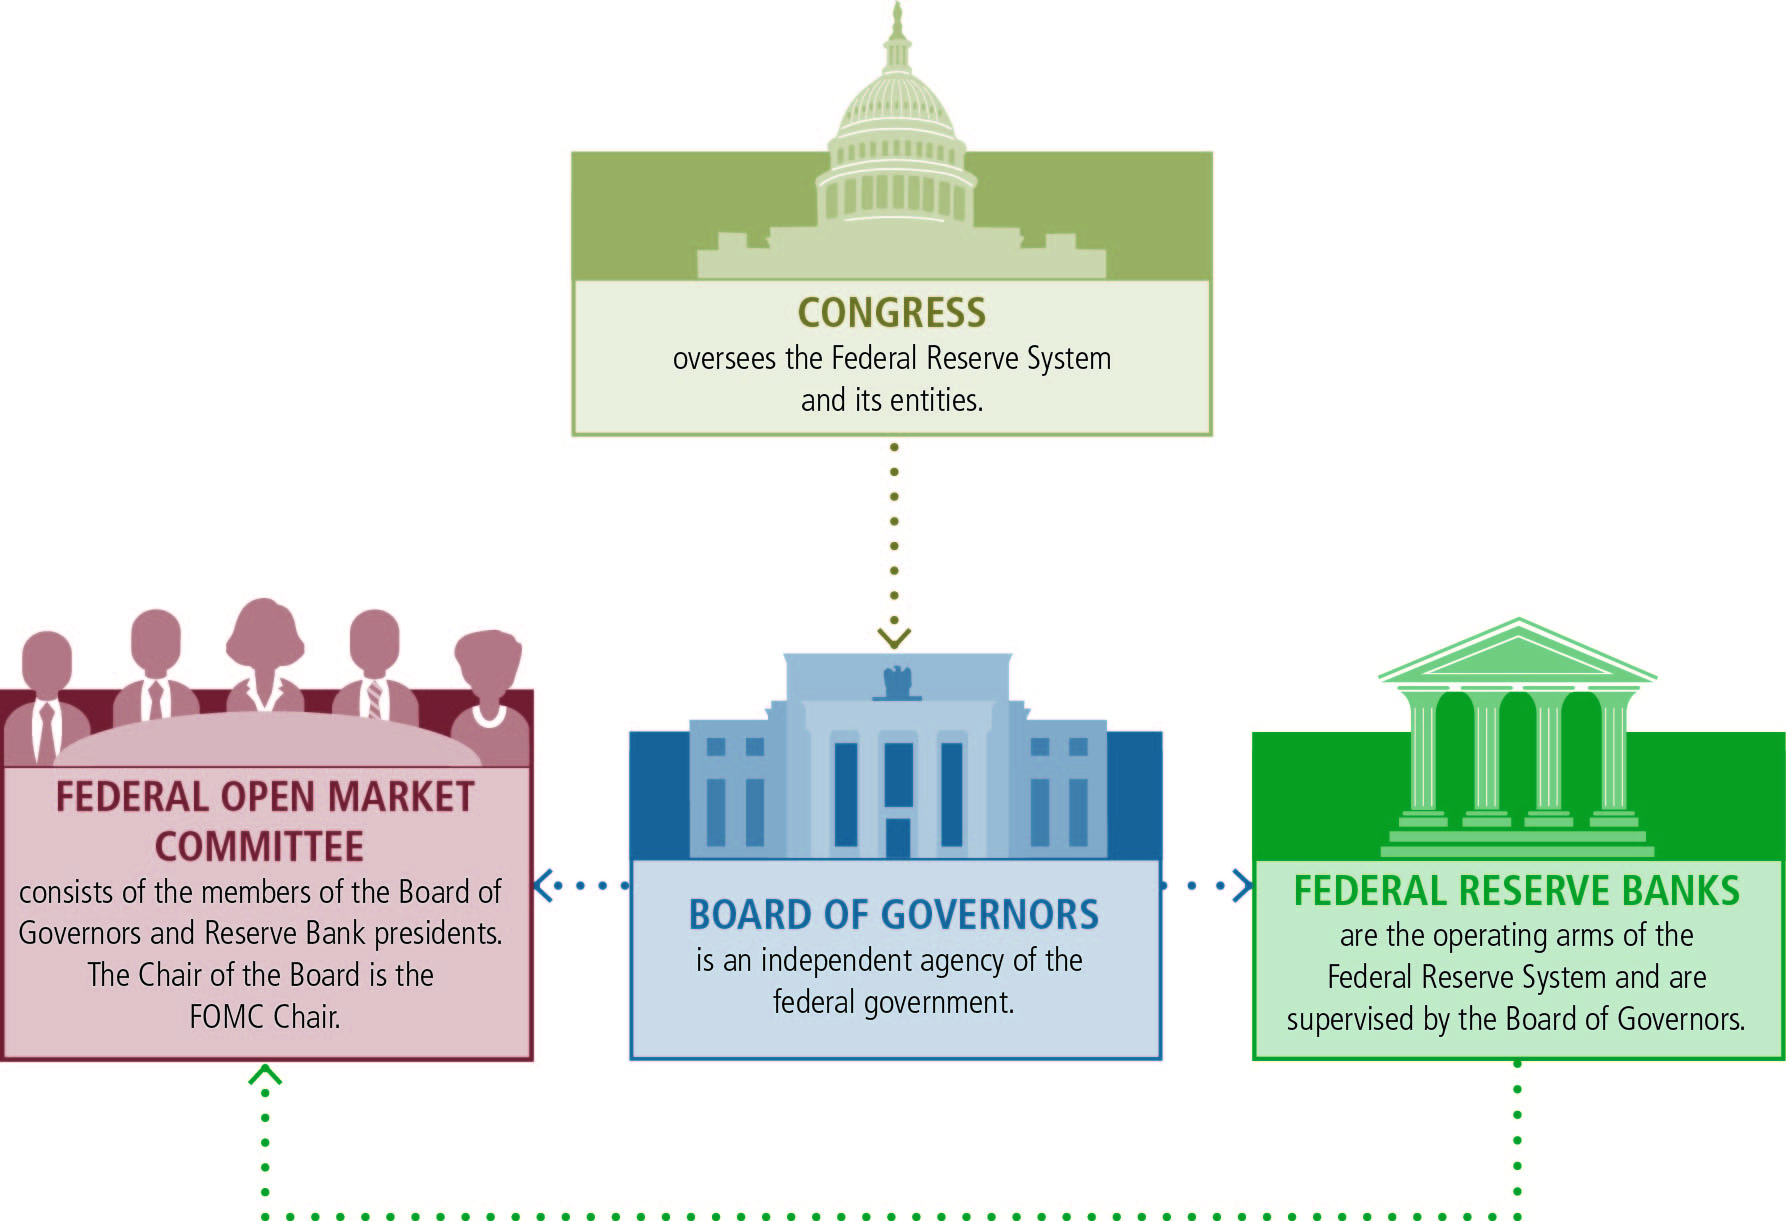 the fed structure of the federal reserve system congress graphic positioned above the three key federal reserve entities graphics congress oversees